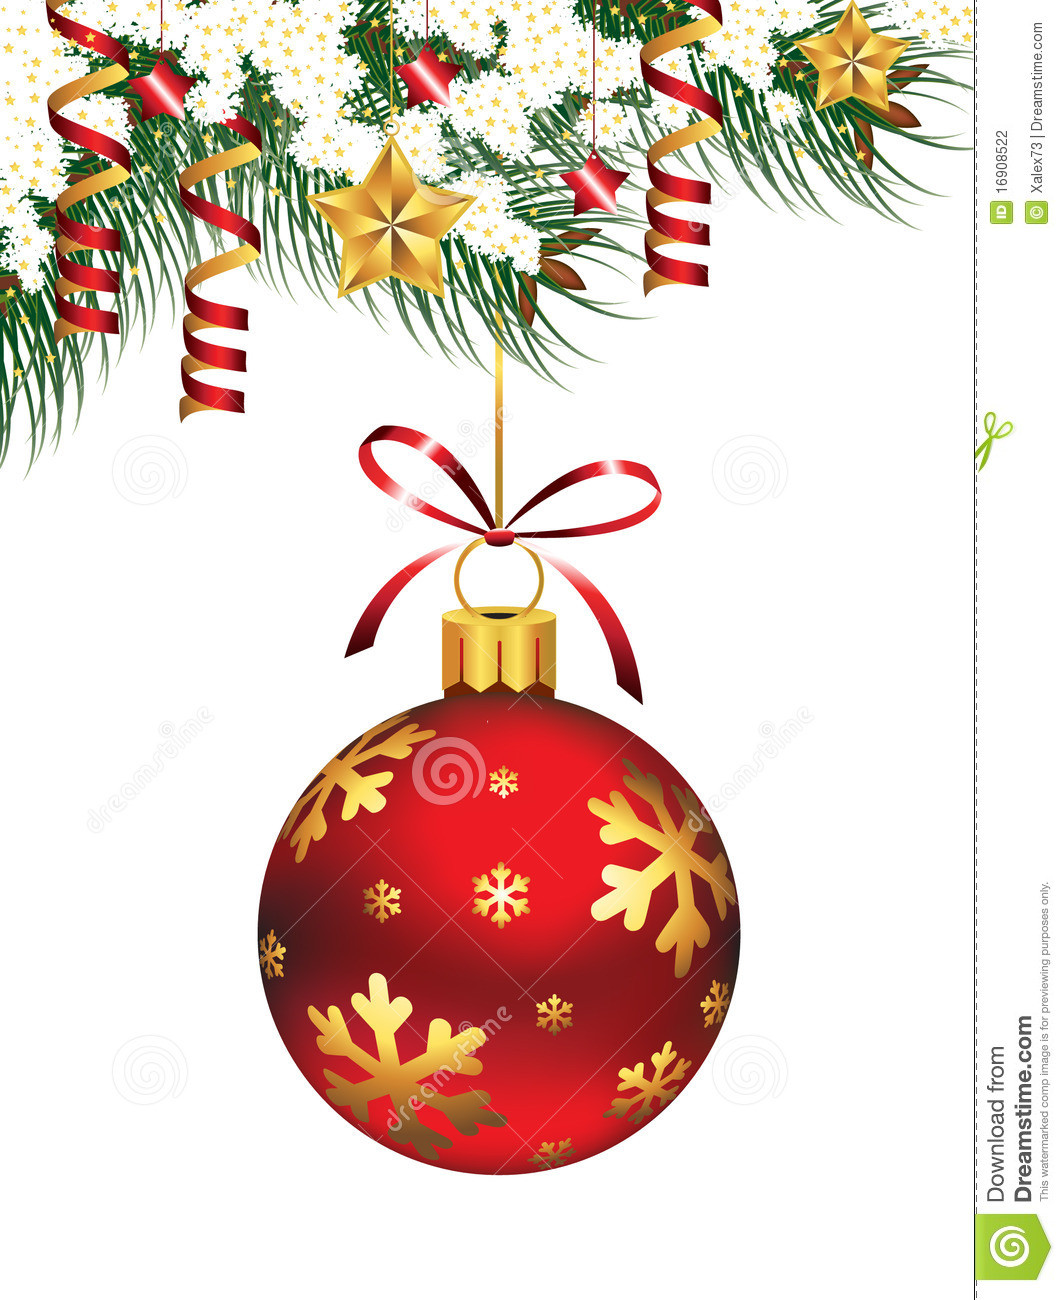 Hanging Christmas ornaments Fresh Hanging Christmas ornament Stock Vector Illustration Of Of Luxury 45 Pictures Hanging Christmas ornaments